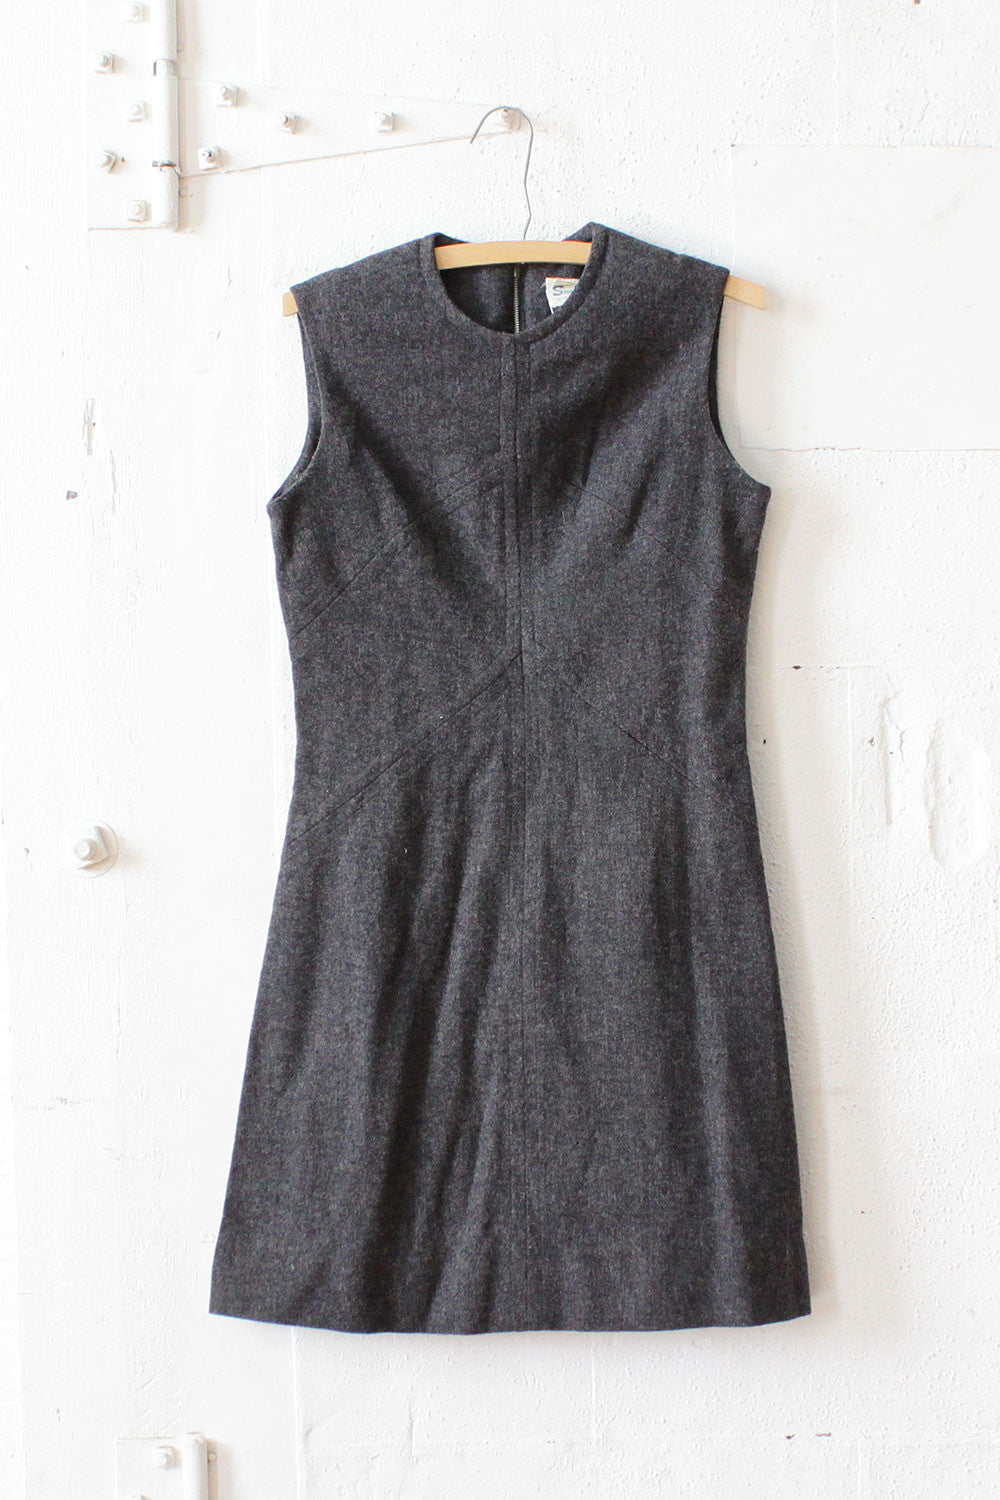 Charcoal Fit and Flare Dress S/M